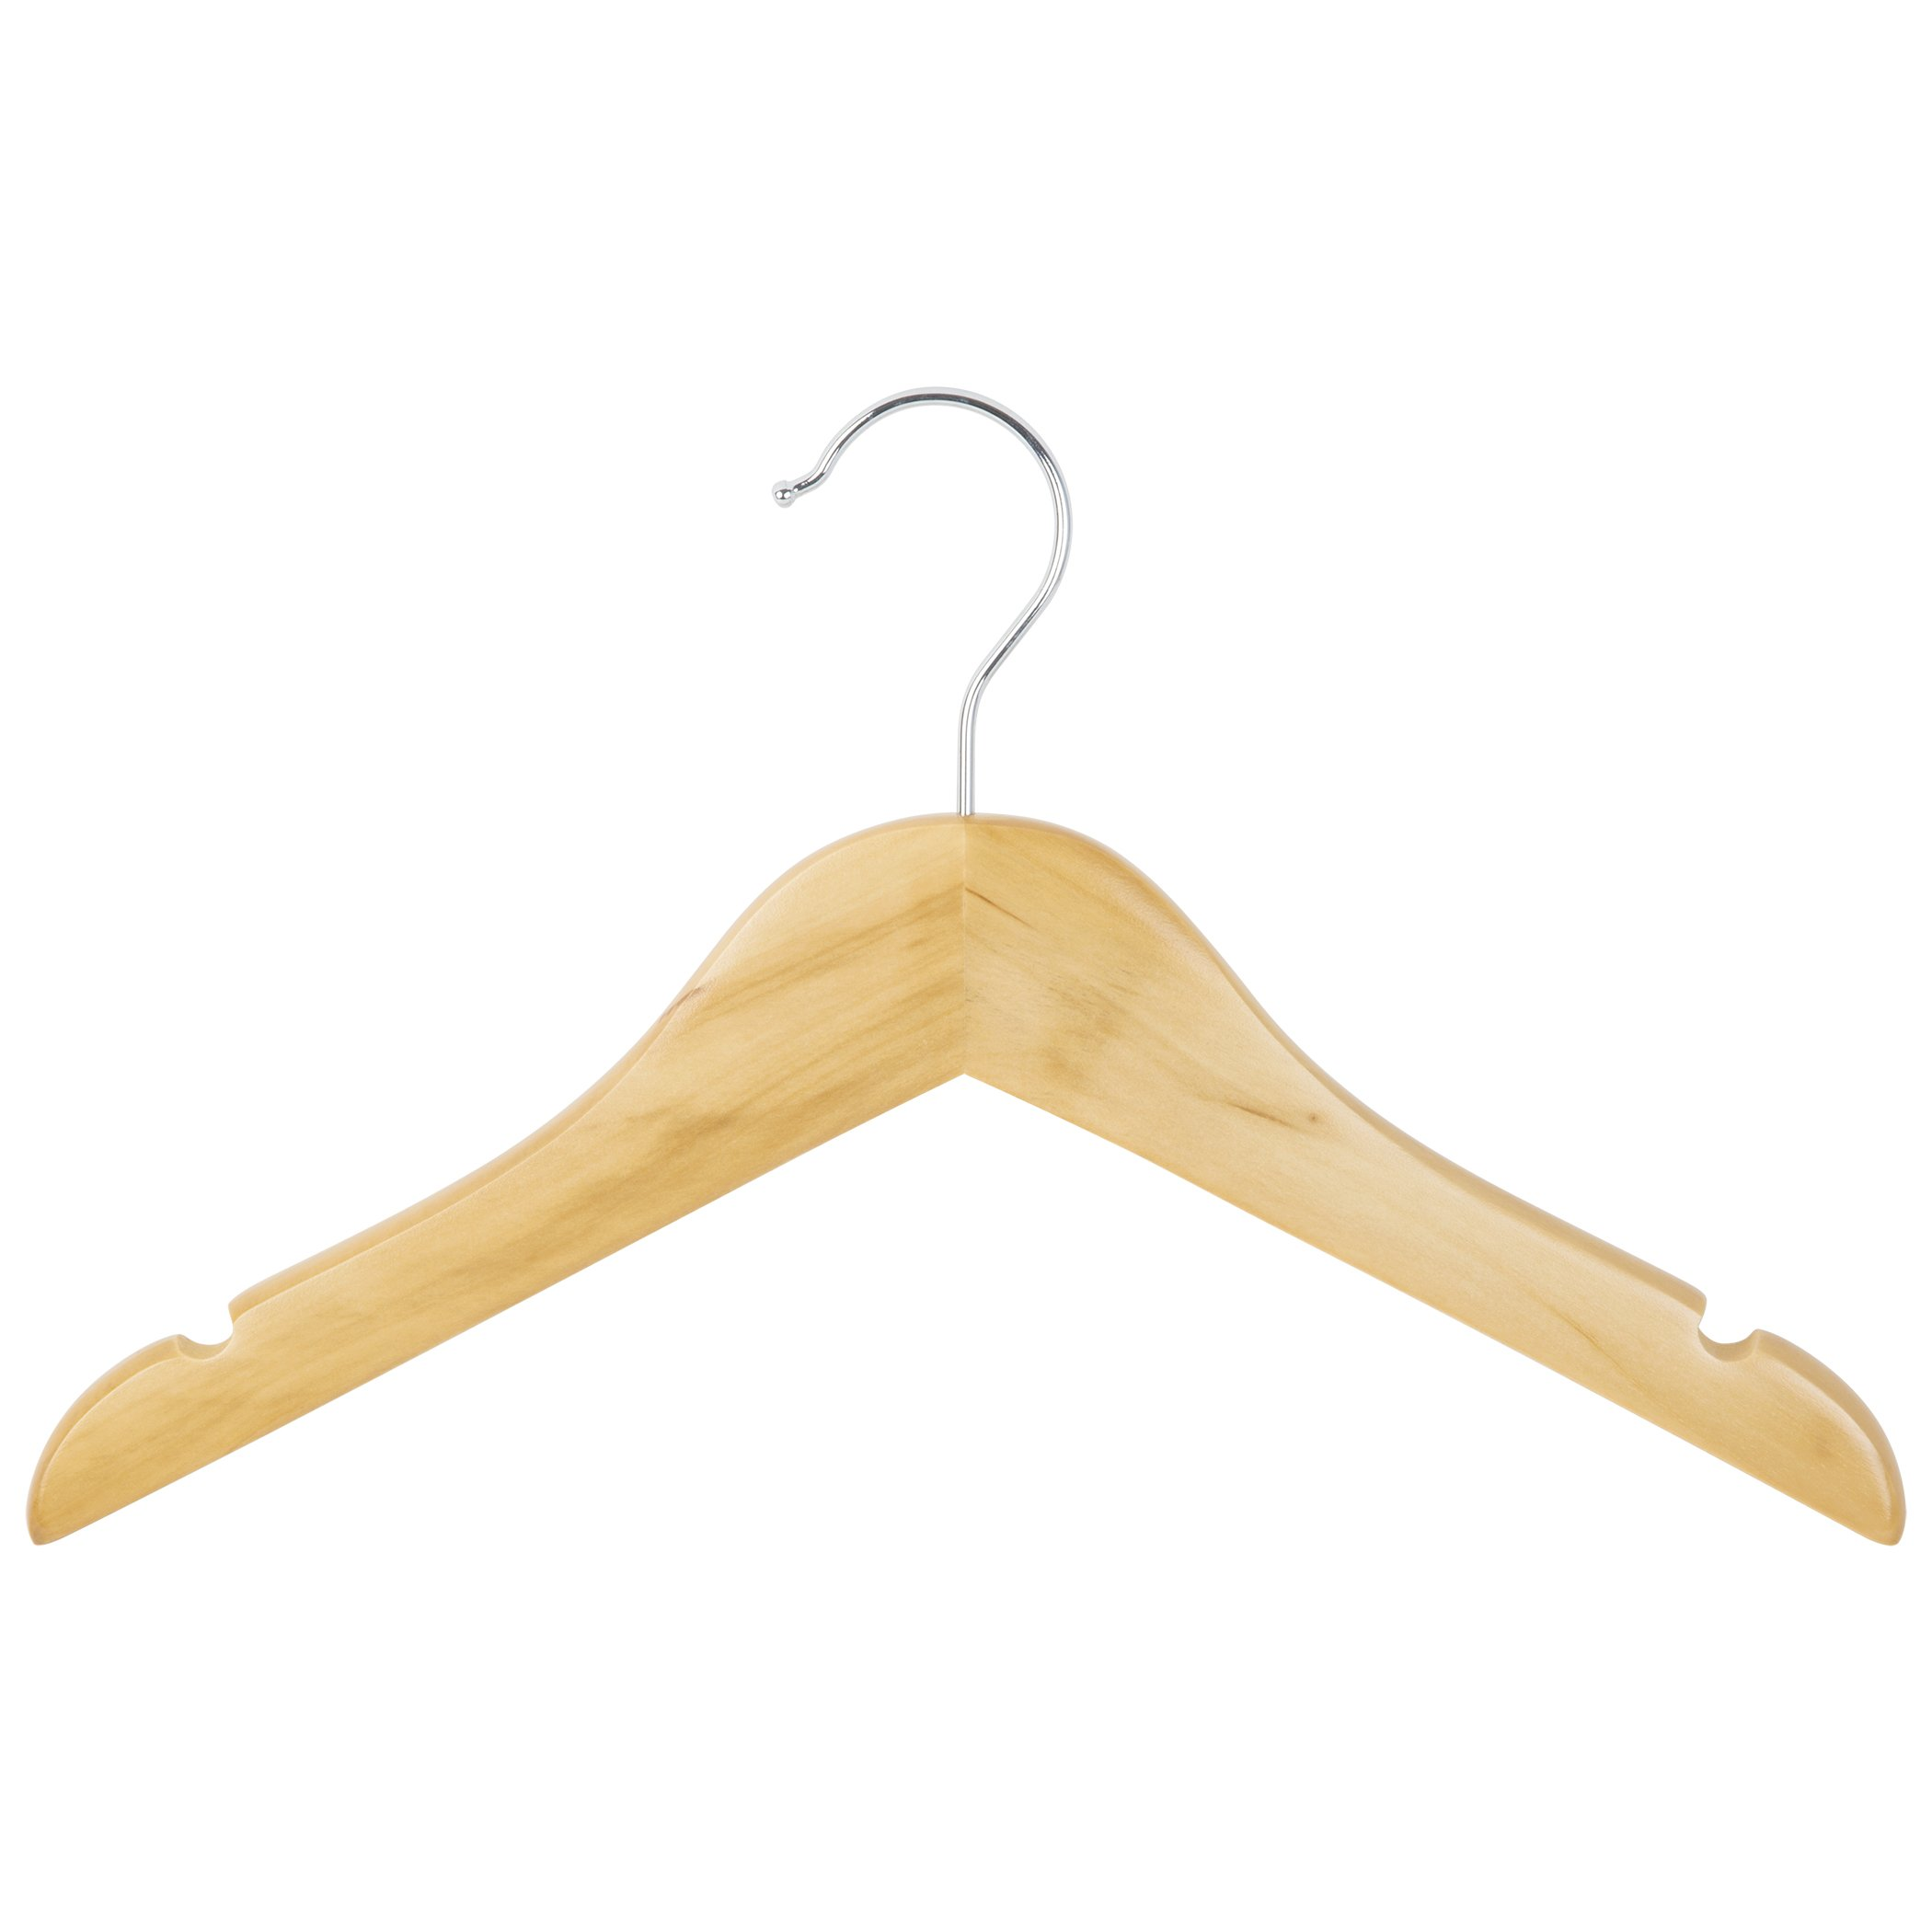 Richards Homewares Imperial/Juvenile Shirt/Coat Hanger Set/6 Wood Children's, set of 6